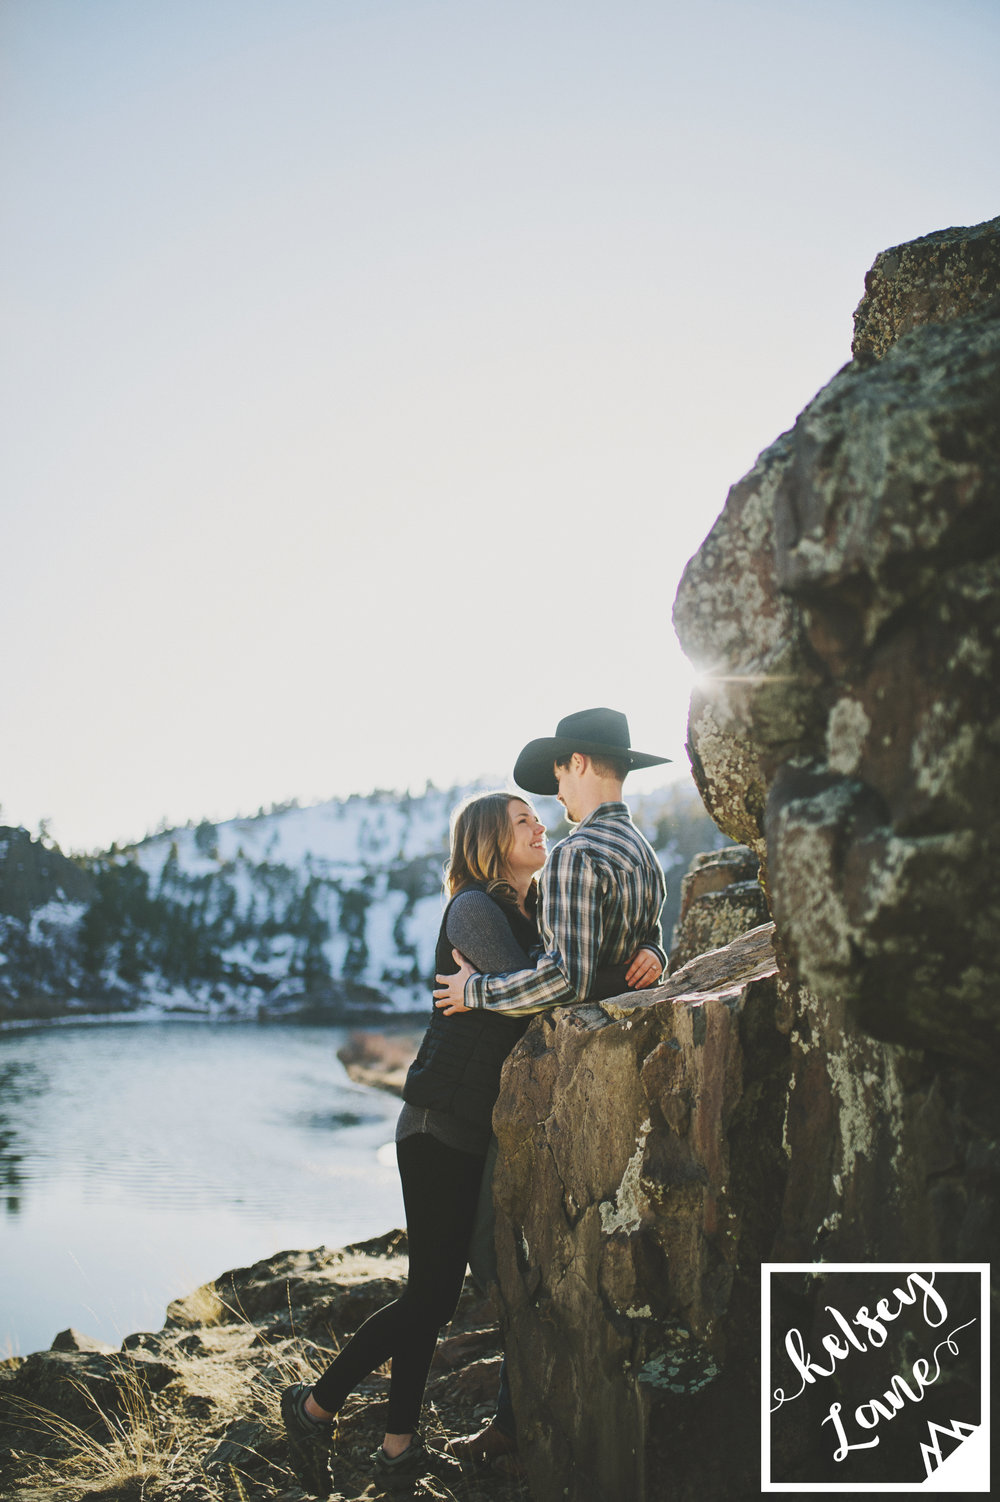 011 Montana River Engagement_Montana Wedding Photographer_Montana Engagement_Helena Engagement_Kelsey Lane Photography_Katlyn Kenyon + Jade Nystrom Engagement-0939-2.jpg